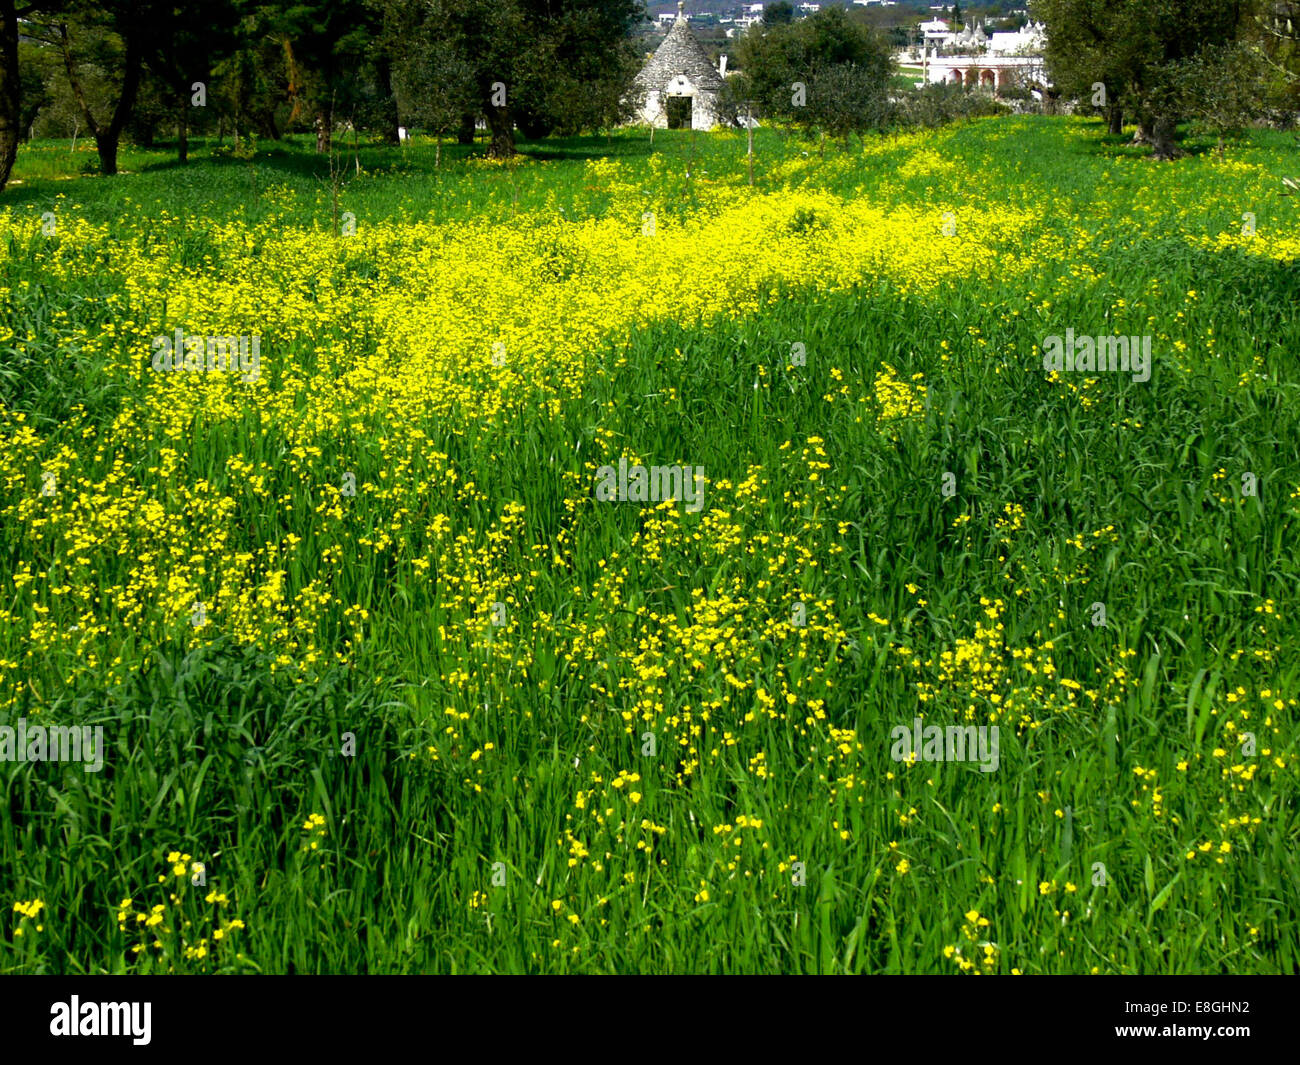 Italy, Picture of spring - Stock Image